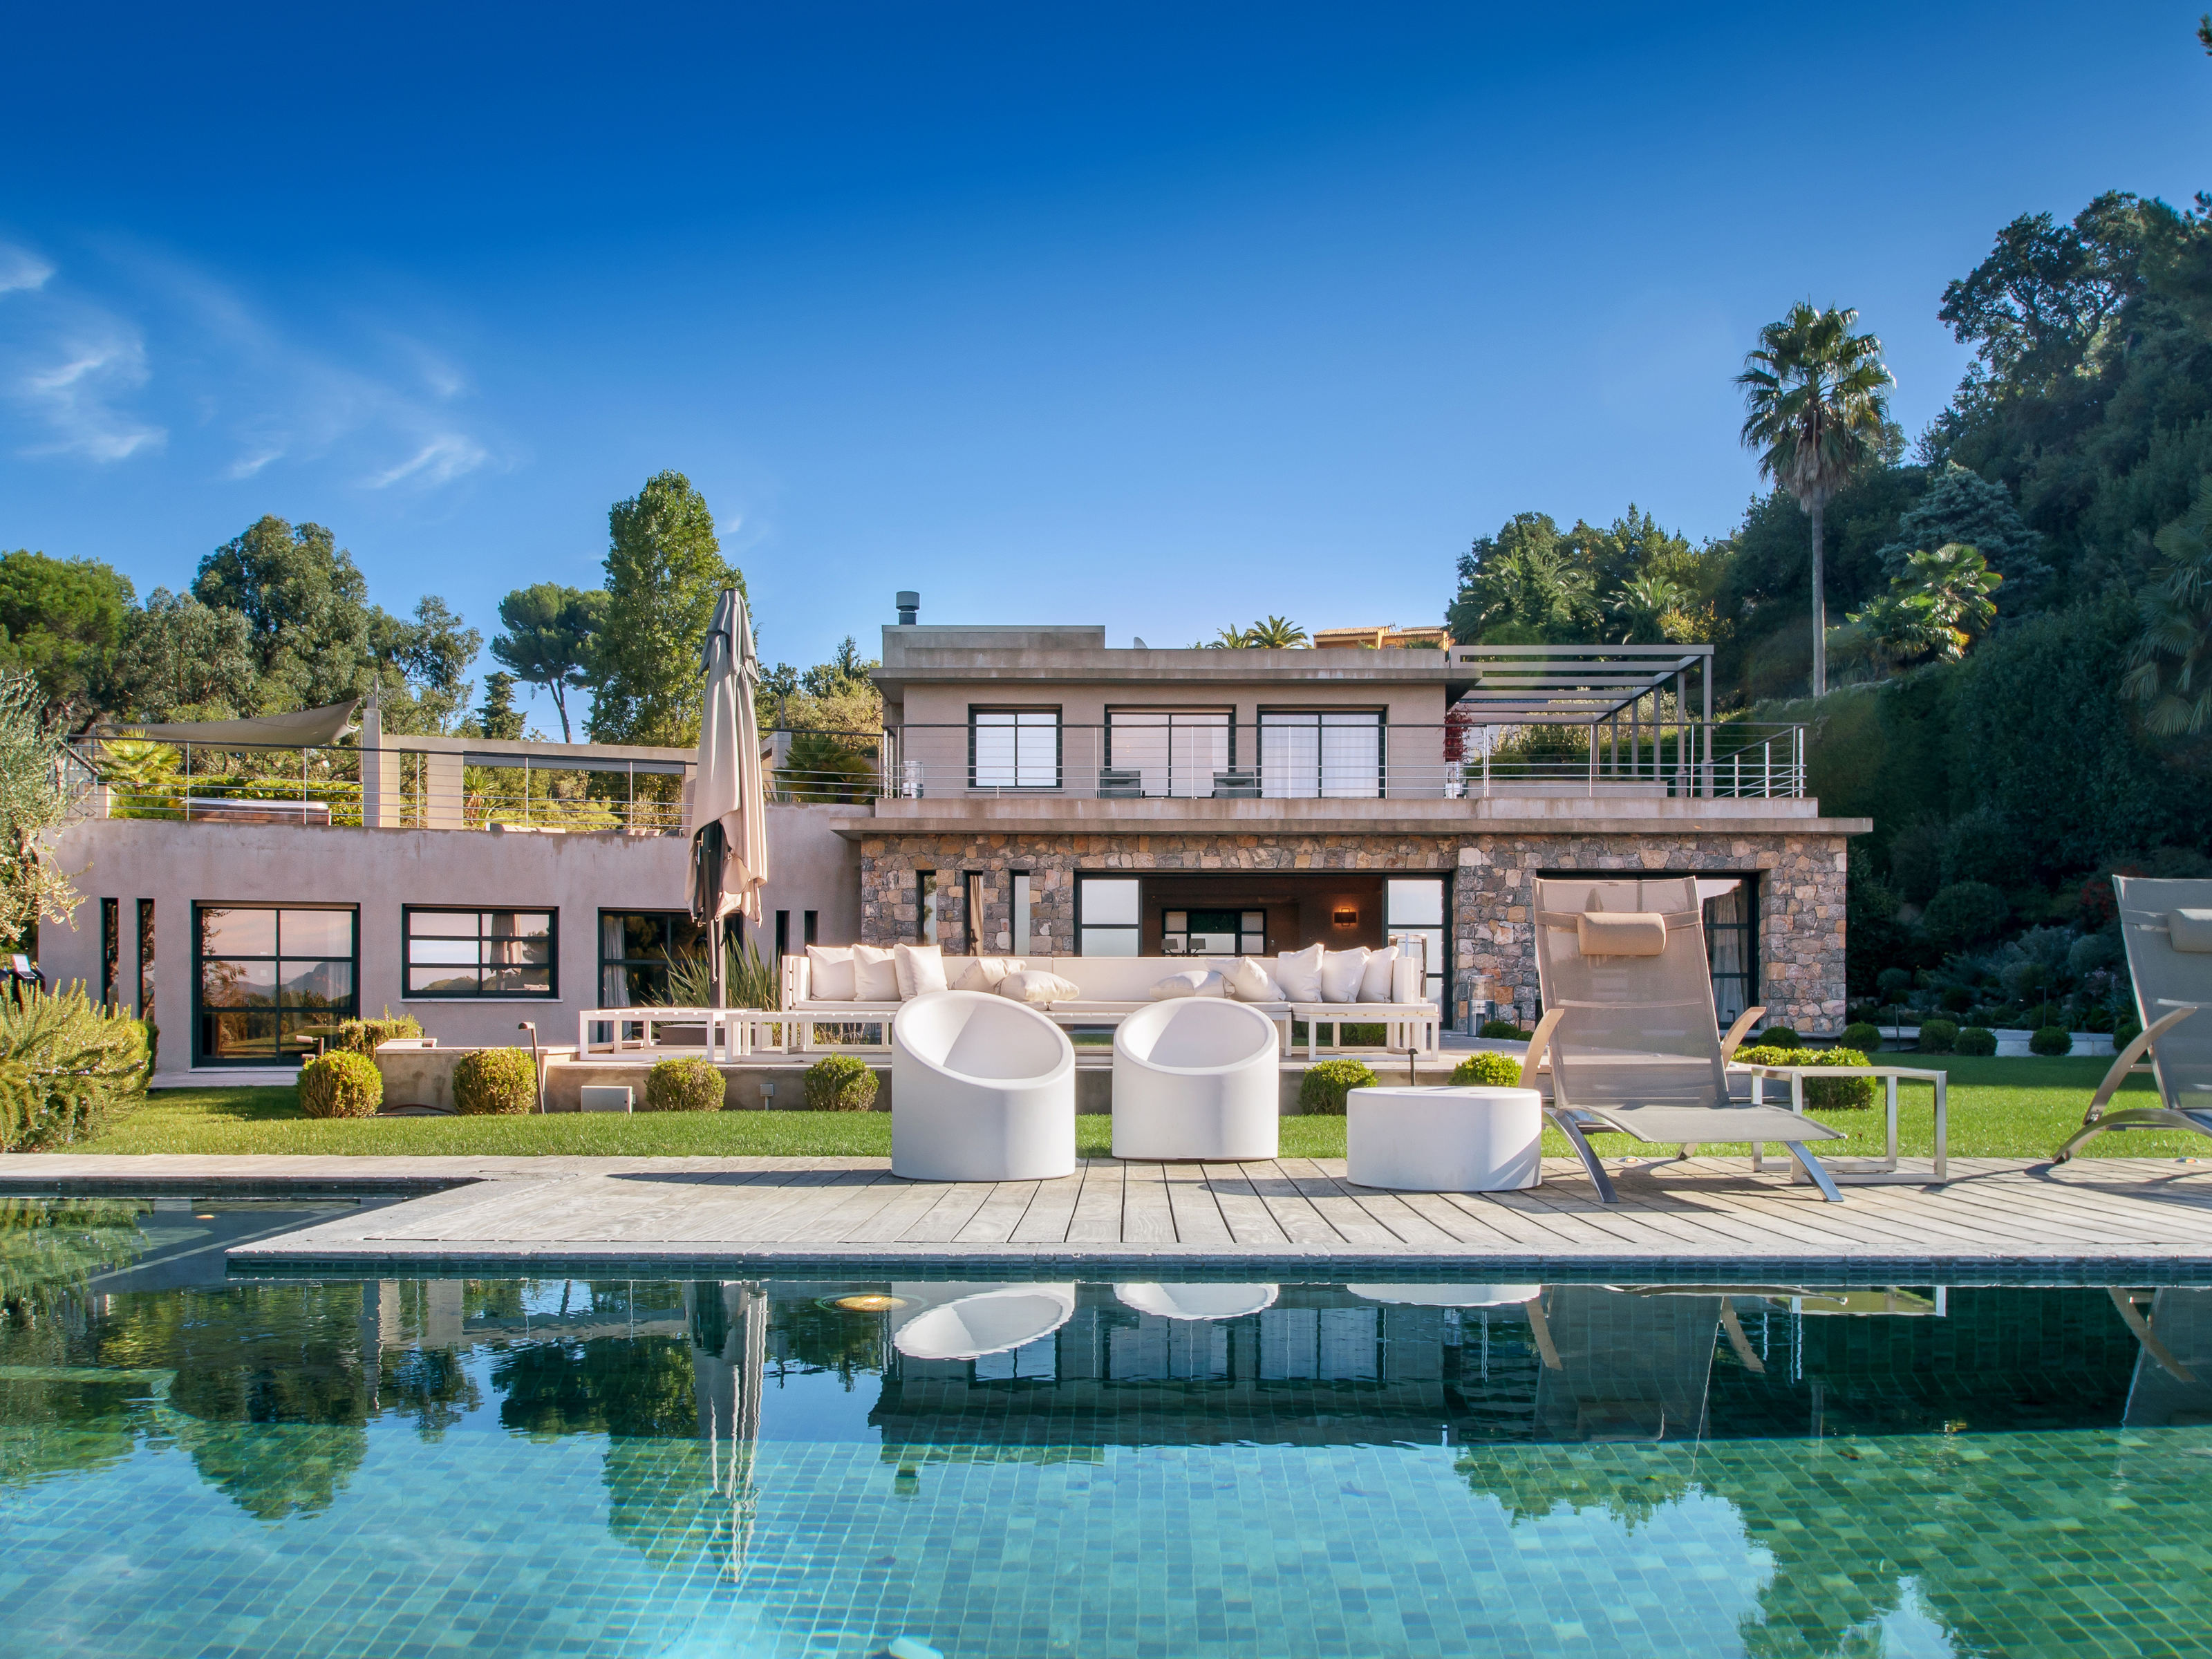 Single Family Home for Sale at Contemporary Estate in Cannes, Californie Cannes, Provence-Alpes-Cote D'Azur 06400 France